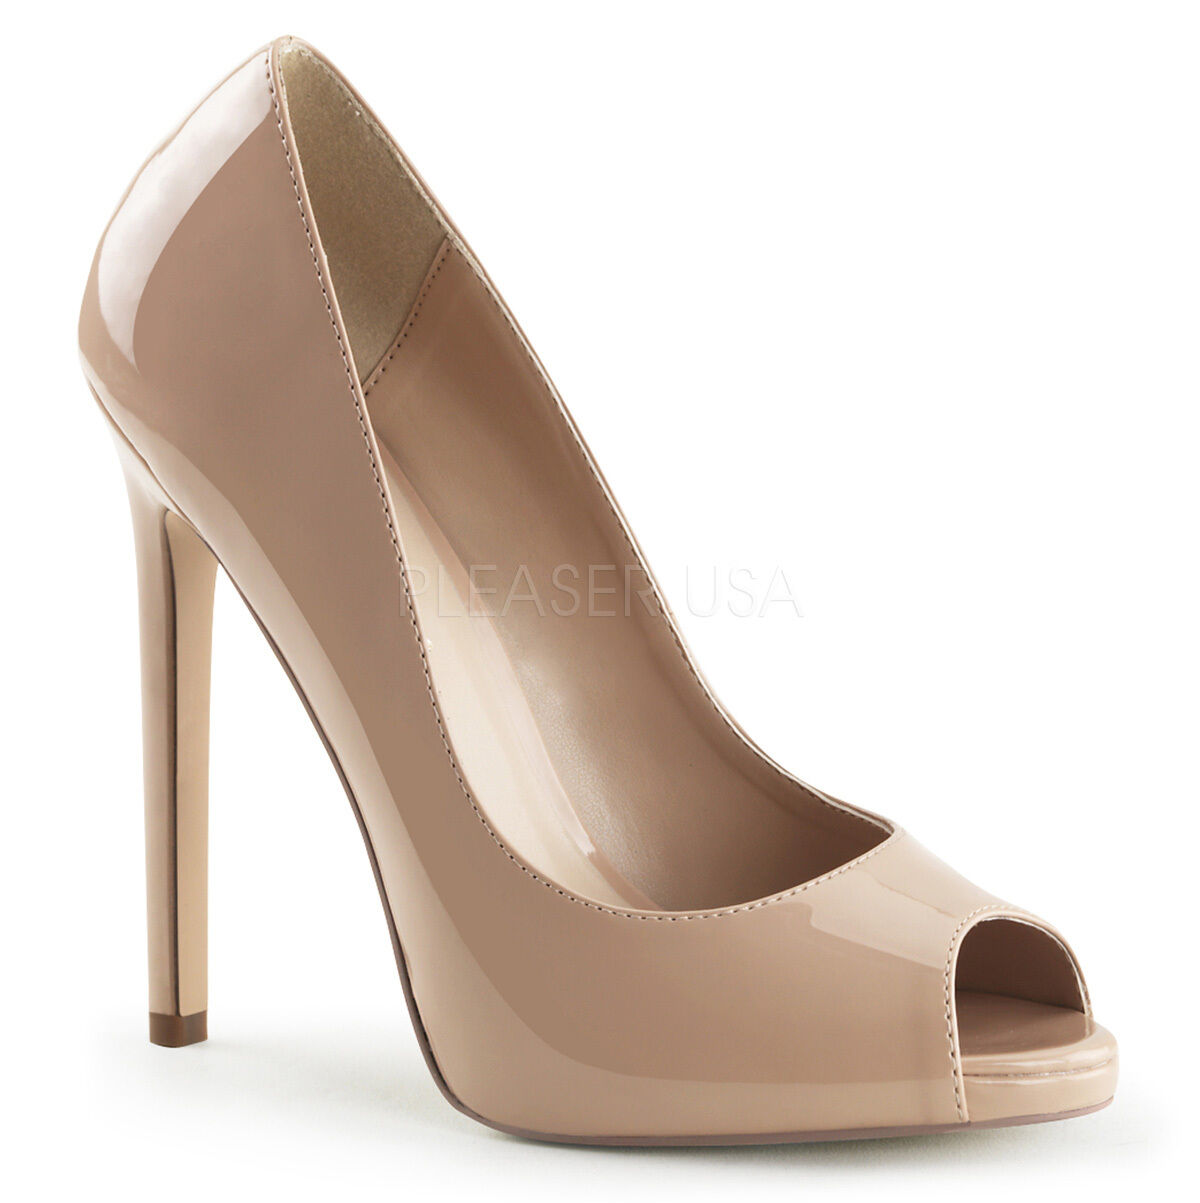 PLEASER Sexy Cream 5  High Heels Heels Heels Stiletto Pumps Peep Toe chaussures SEXY42 NU 0ca788